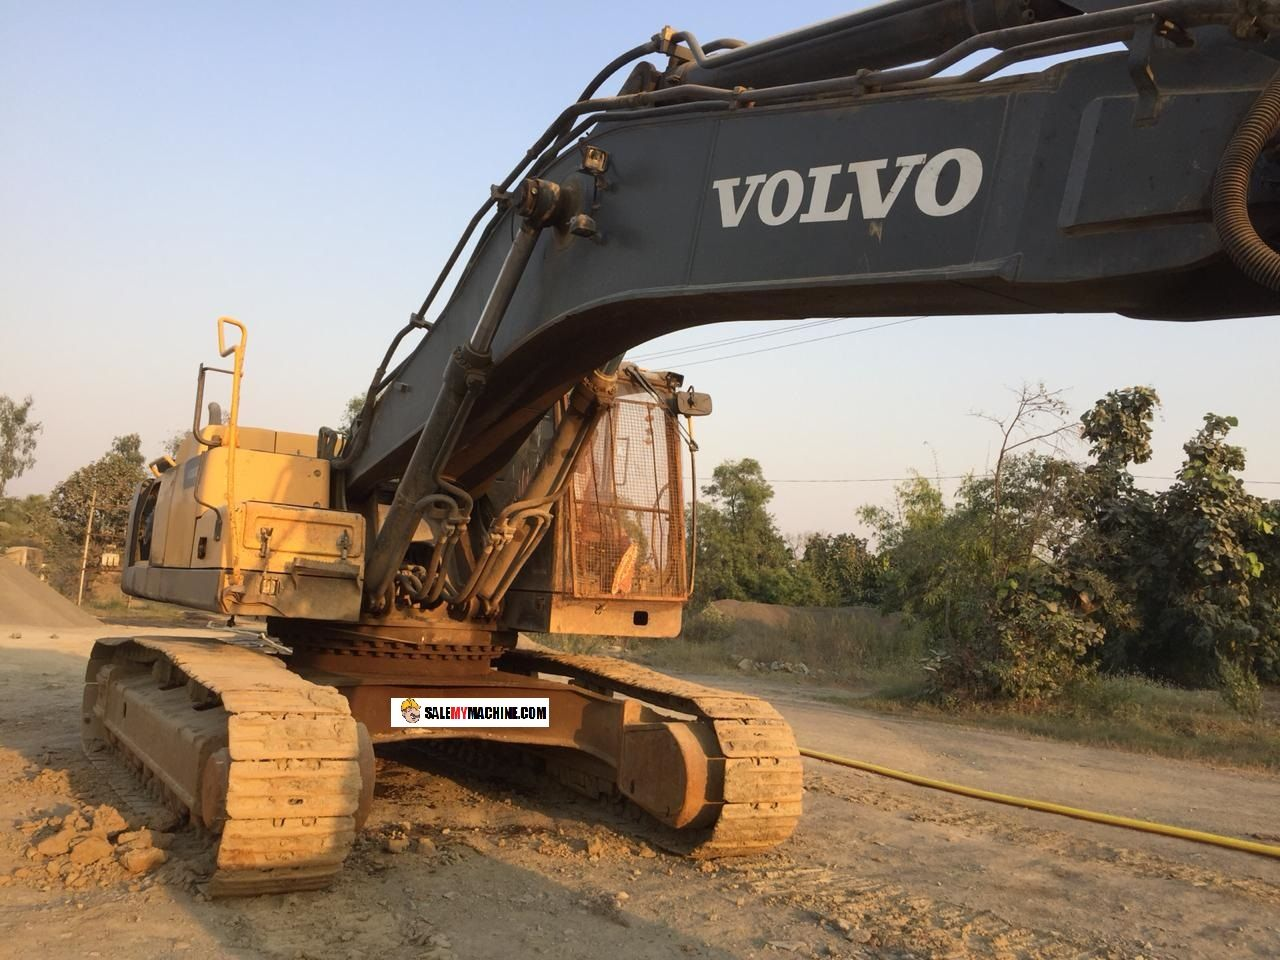 USED VOLVO 480 WITH BREAKER FOR SALE IN ODISHA INDIA ALWAYS